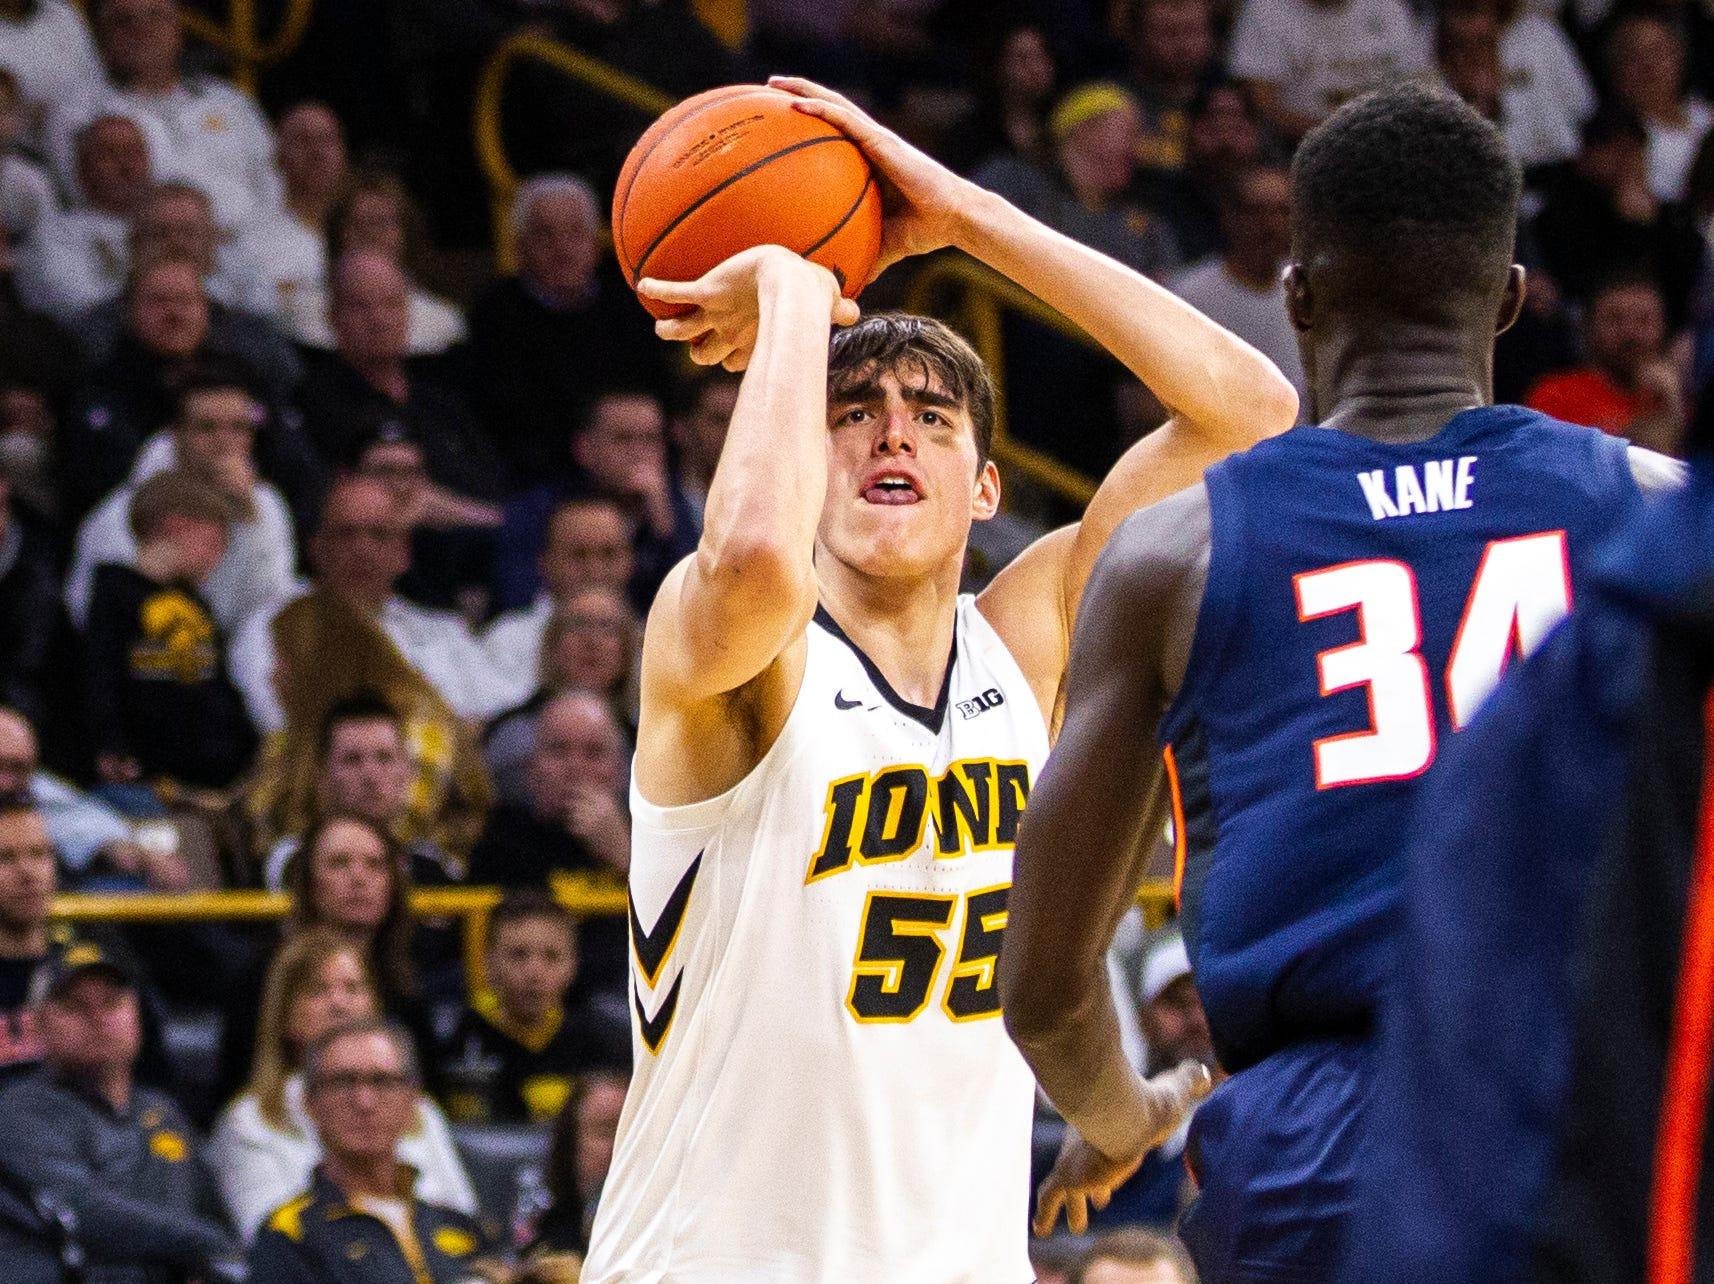 Iowa forward Luka Garza (55) shoots a 3-point basket during a NCAA Big Ten Conference men's basketball game on Sunday, Jan. 20, 2019, at Carver-Hawkeye Arena in Iowa City, Iowa.